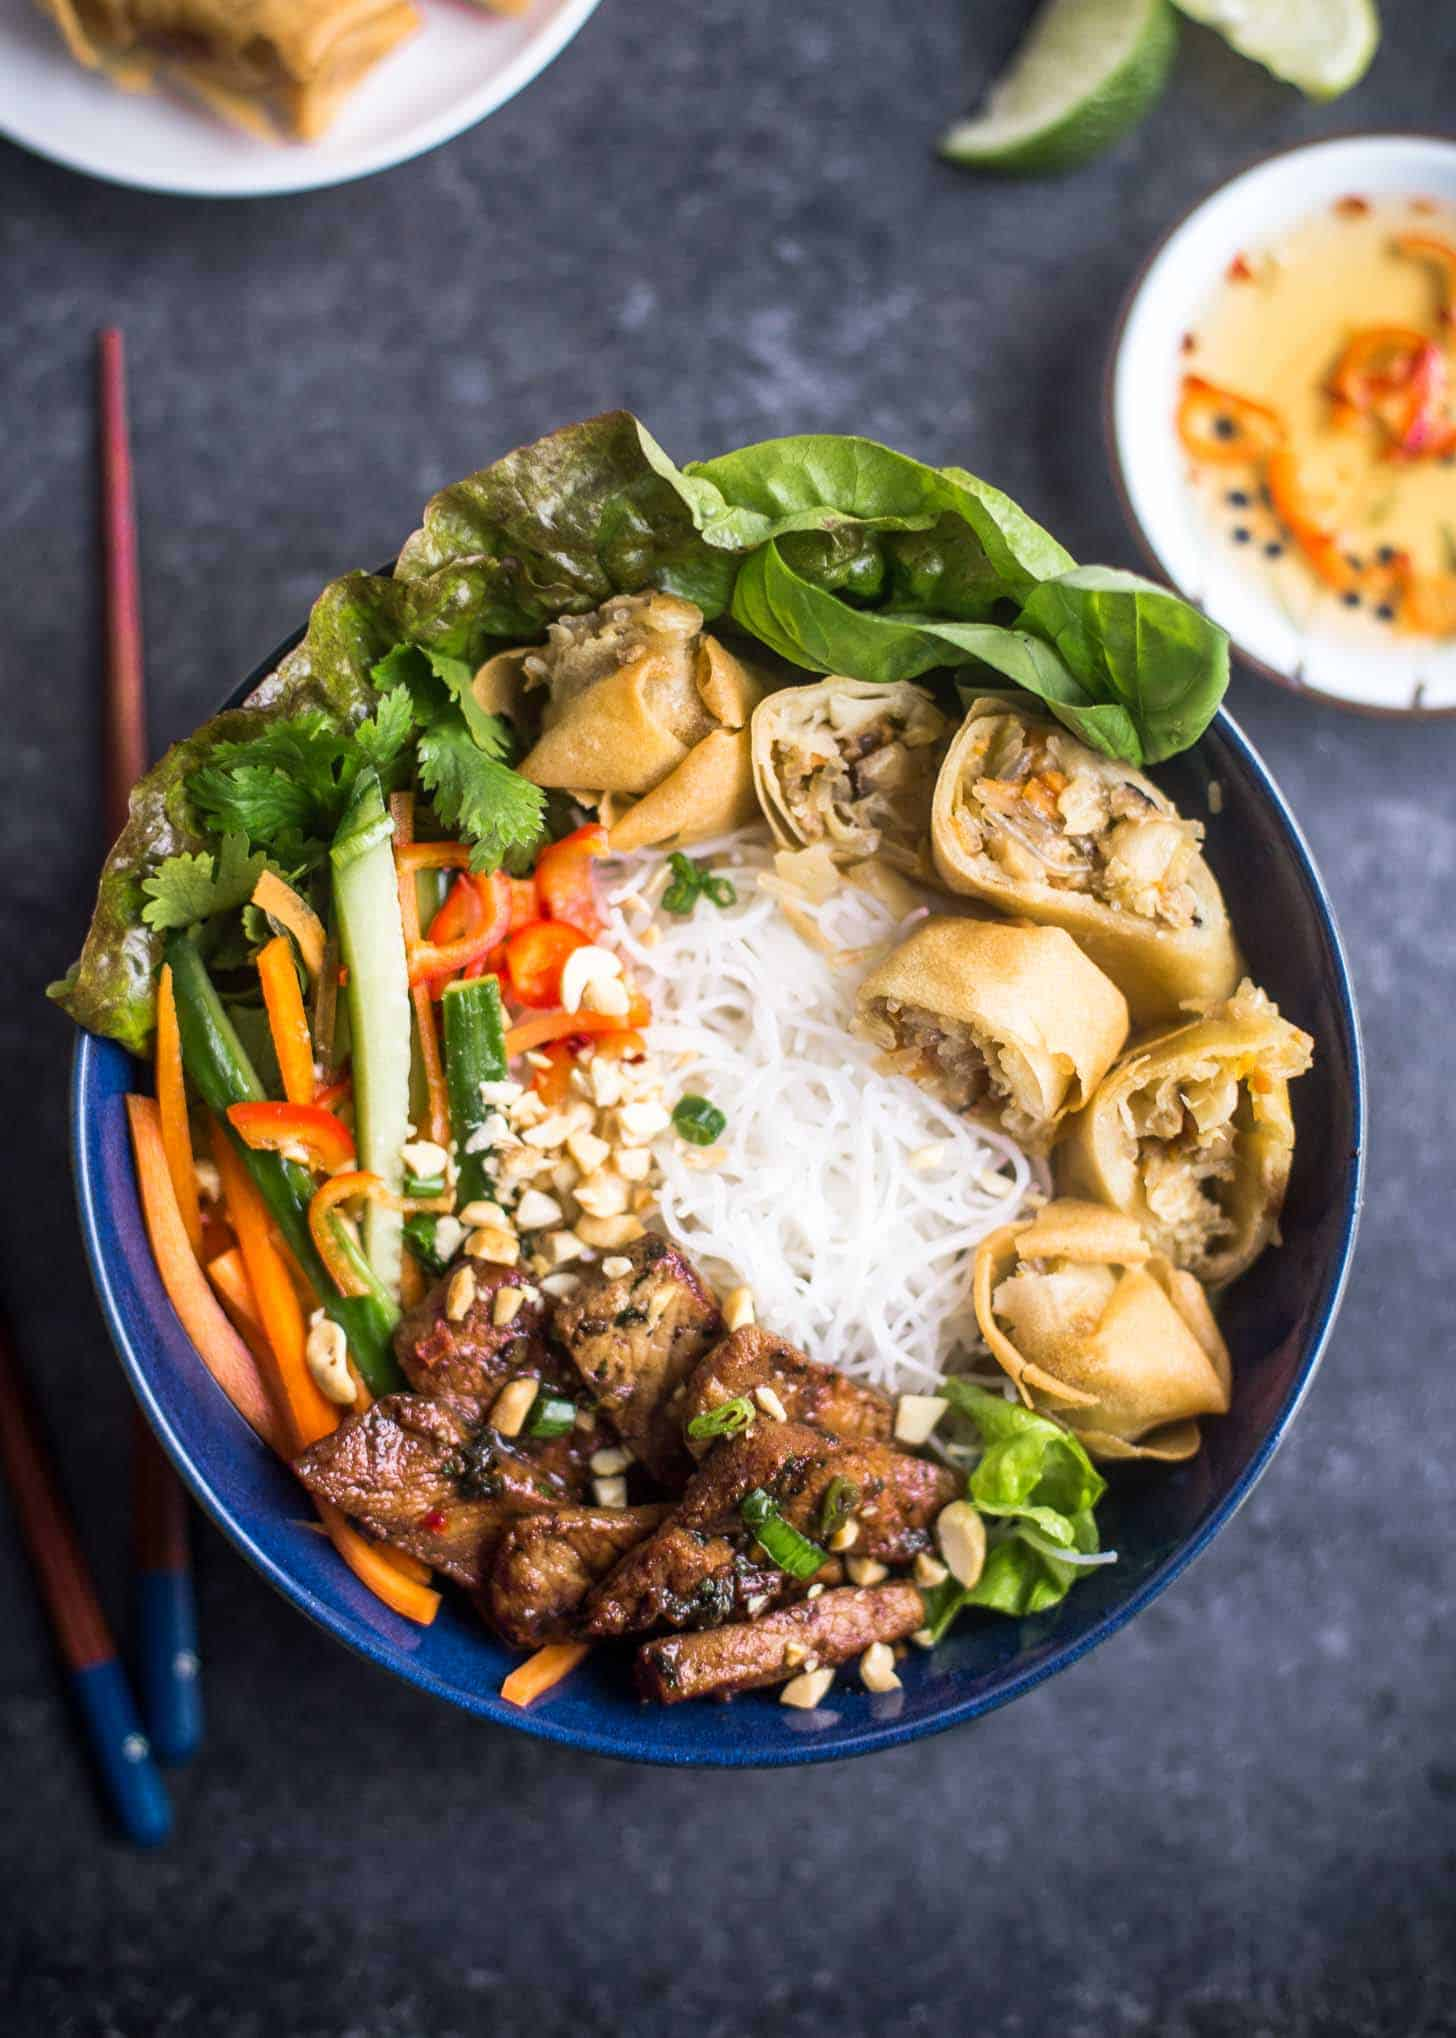 Delicious Bowl of Bun Thit Nuong Cha Gio with peanuts